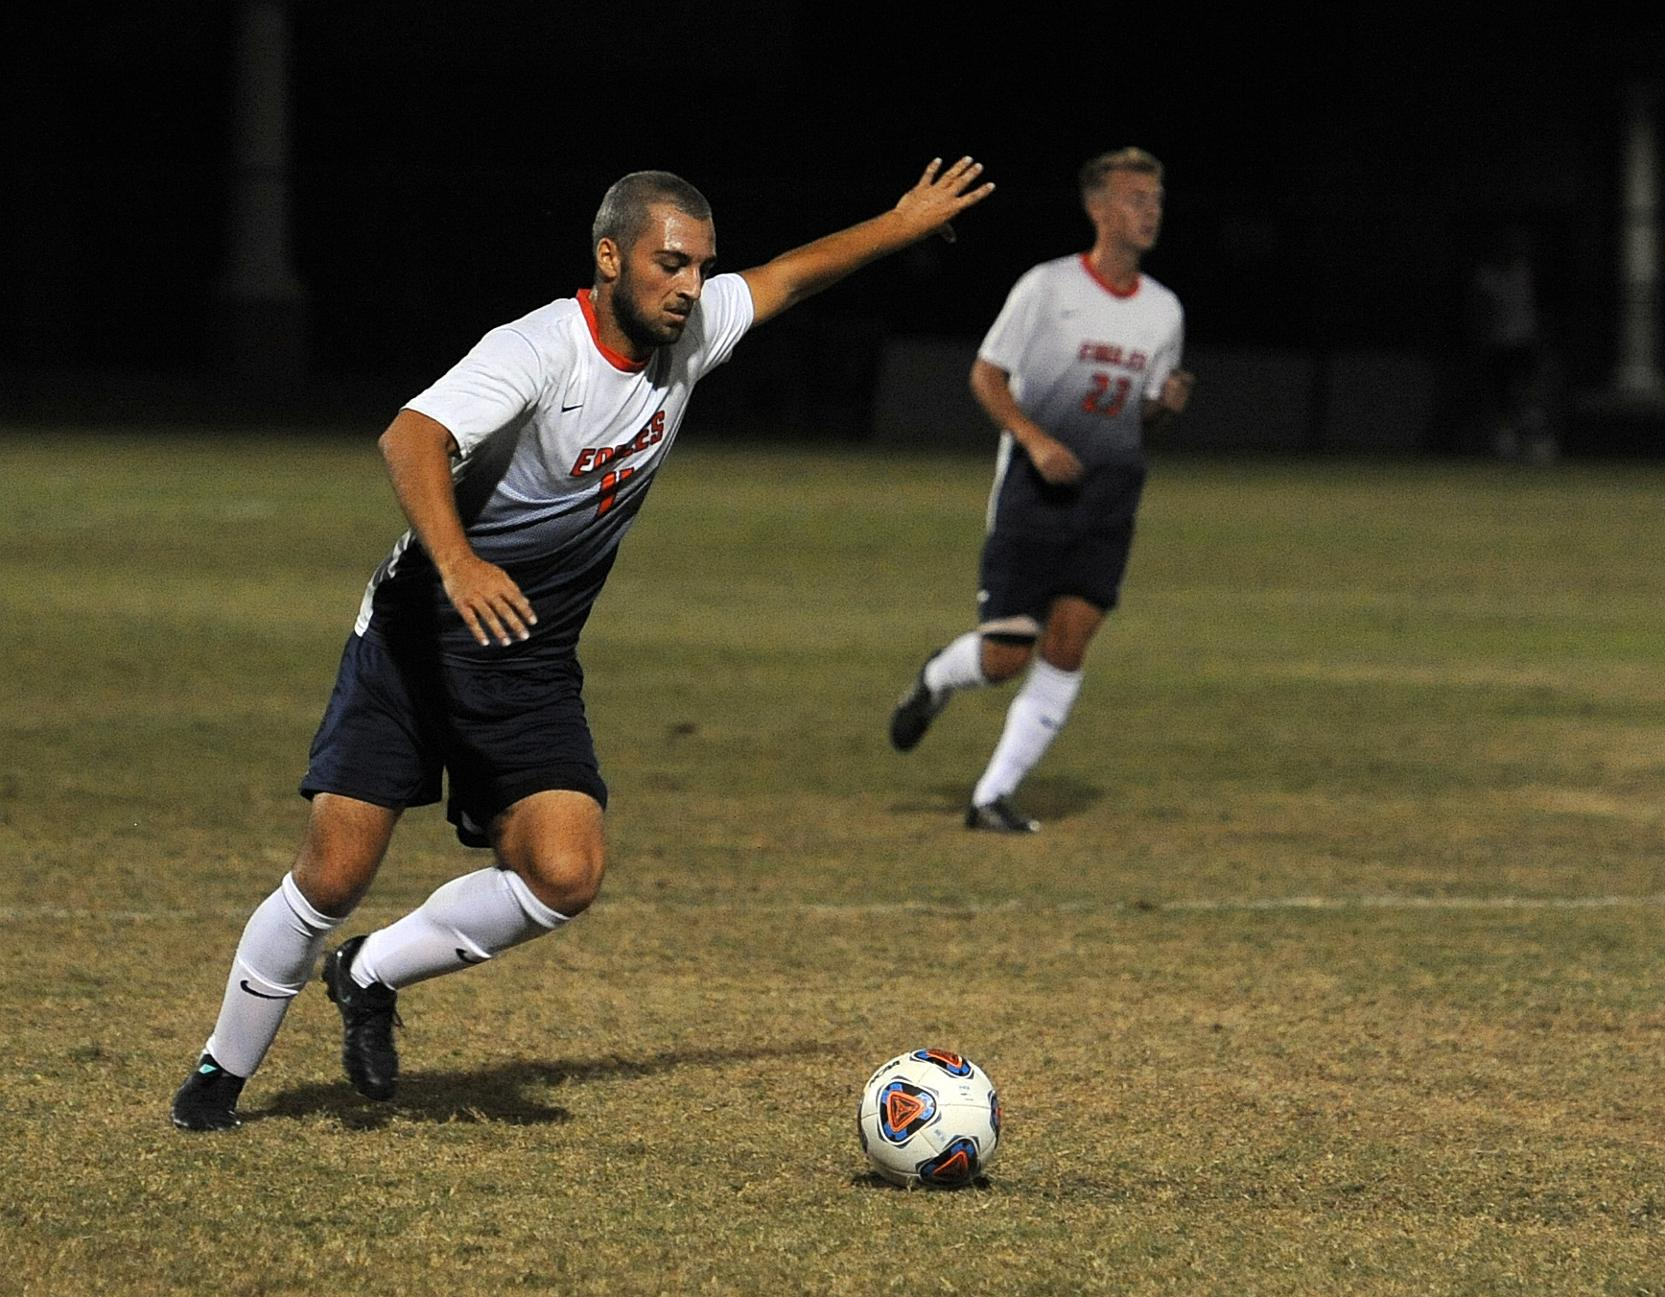 Season ends on sour note for Eagles with 3-1 loss to Coker